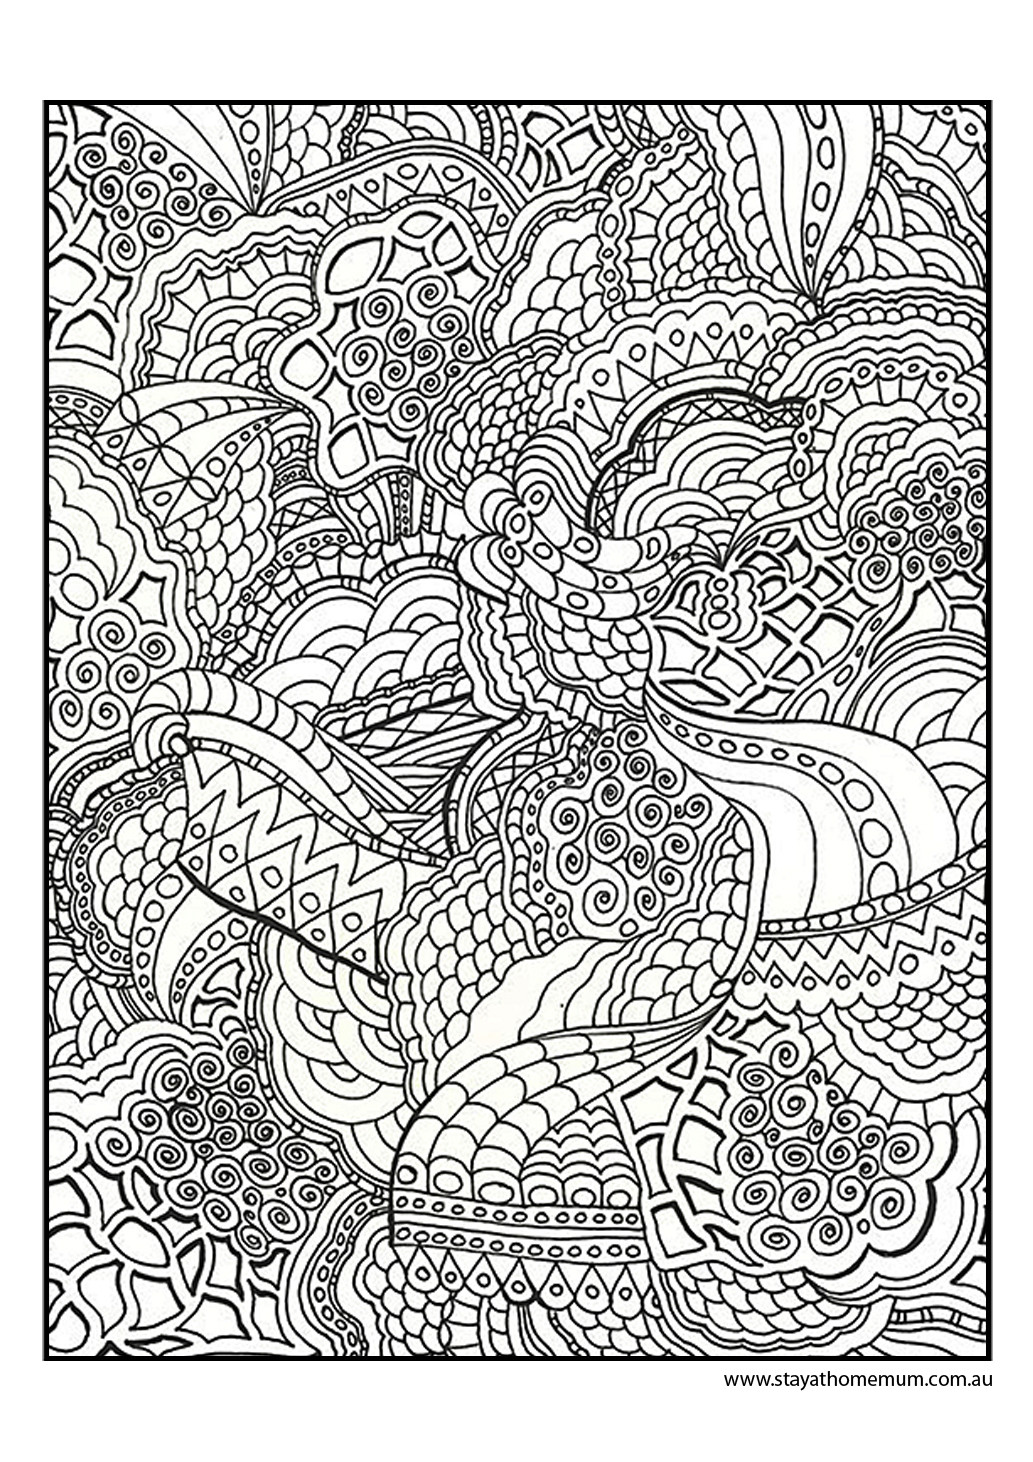 Best ideas about Fun Printable Coloring Pages For Adults . Save or Pin Printable Colouring Pages for Kids and Adults Now.